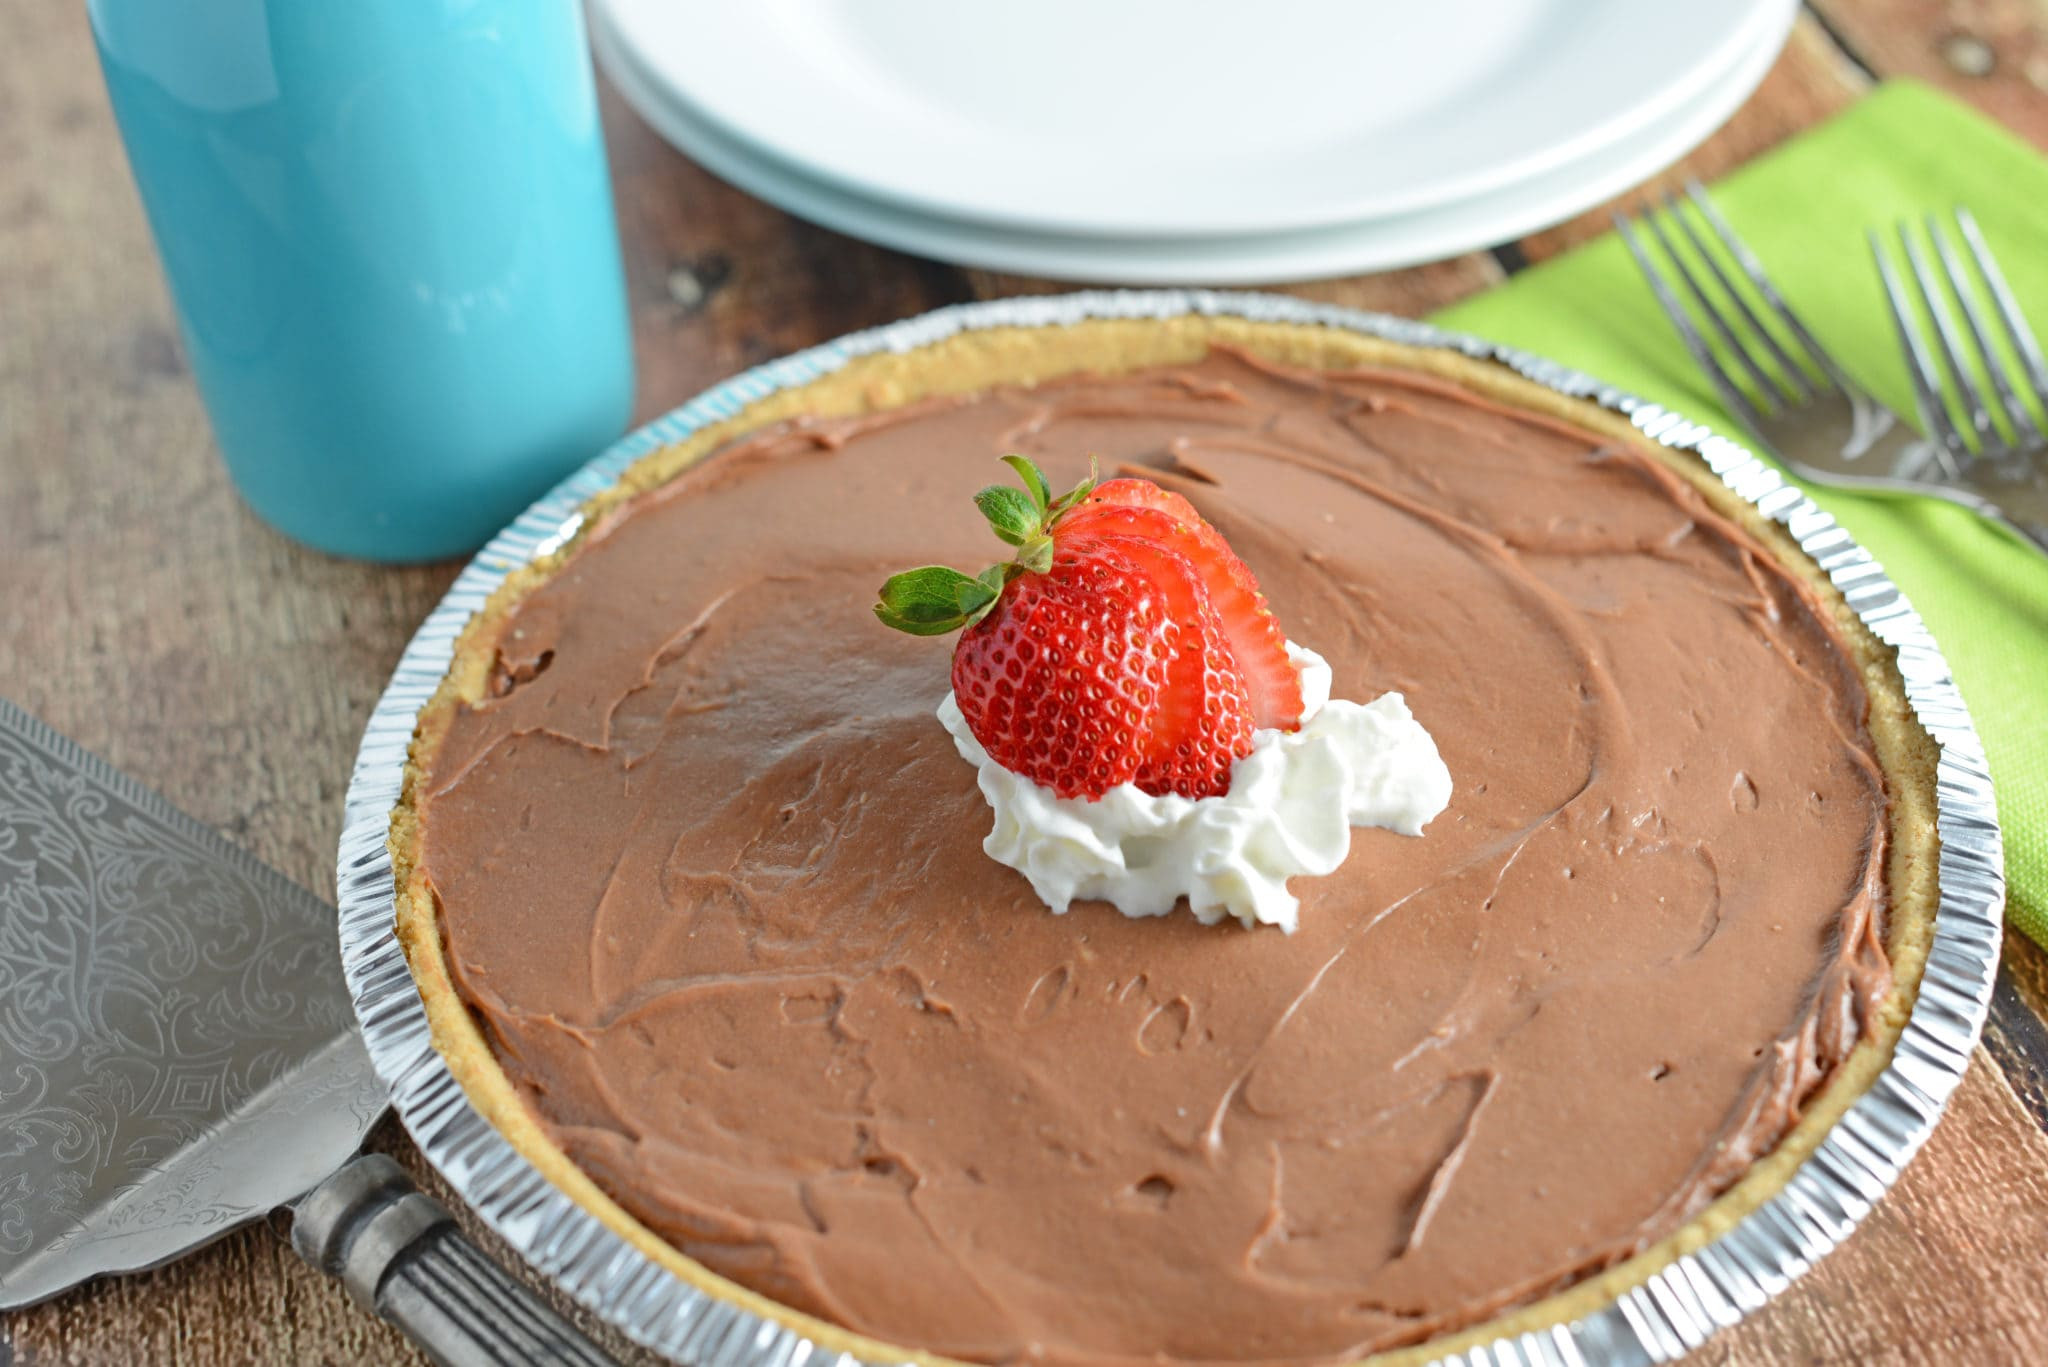 Easy Party Desserts  Creamy No Bake Chocolate Cheesecake Savory Experiments